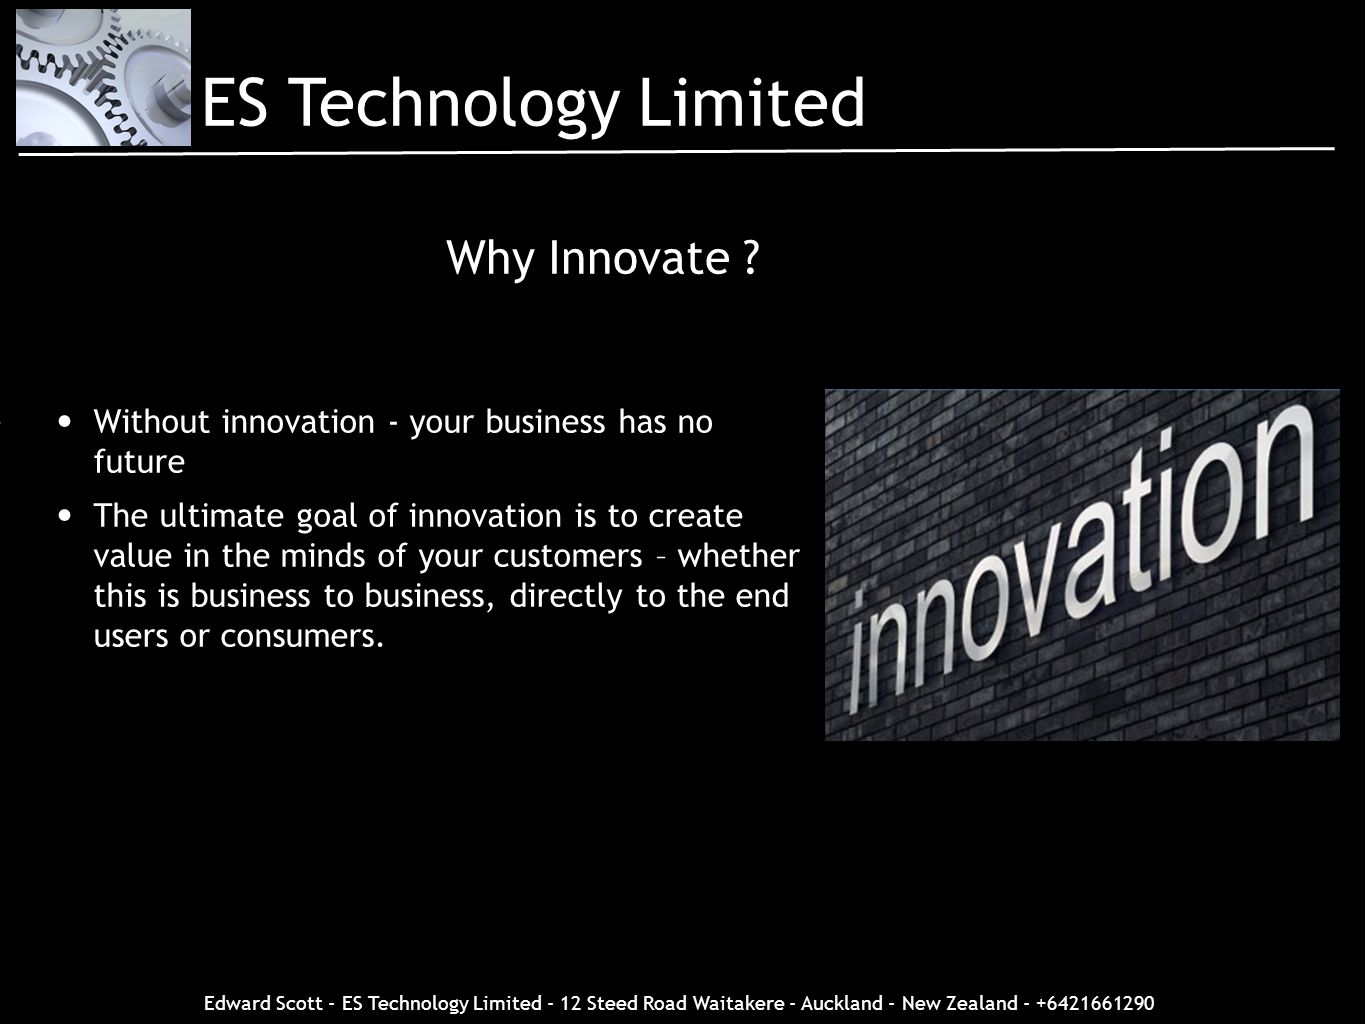 ES Technology Limited Why Innovate